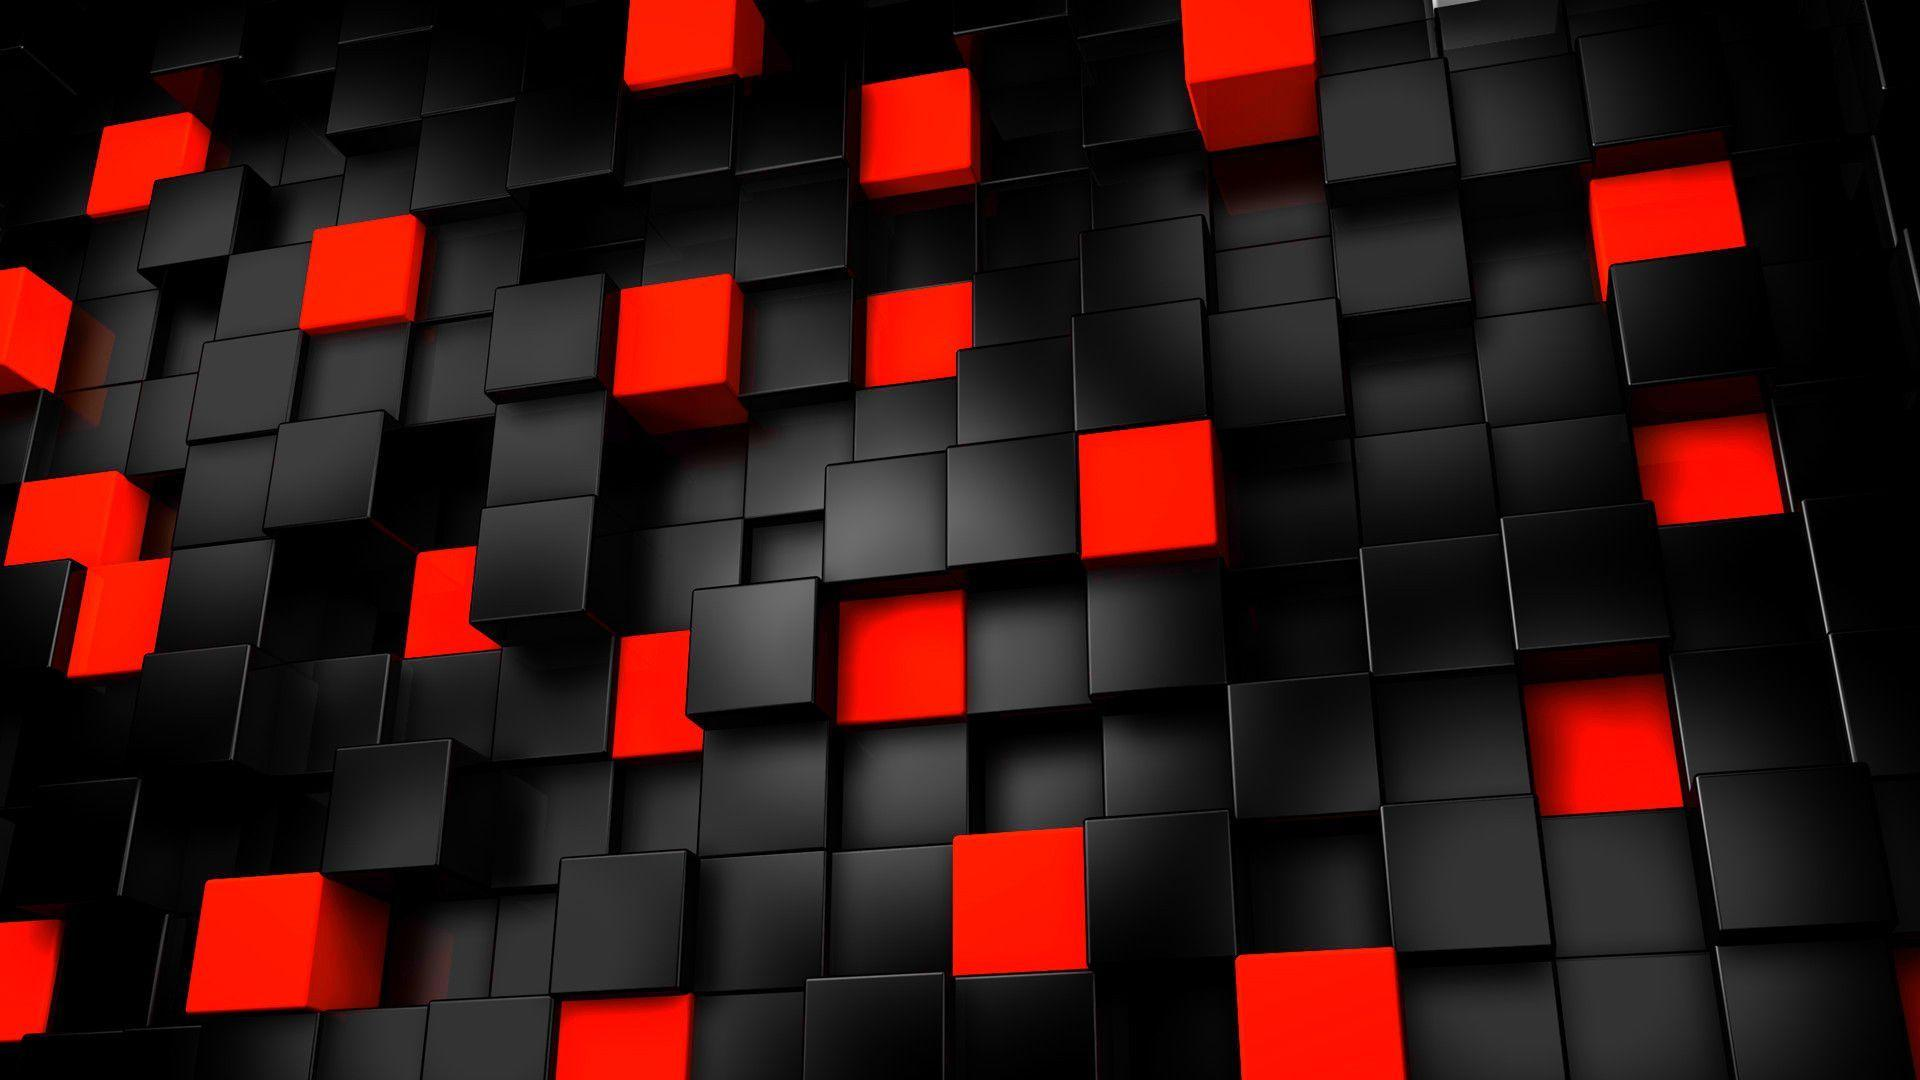 Black And Red Abstract Wallpapers Wallpaper Cave